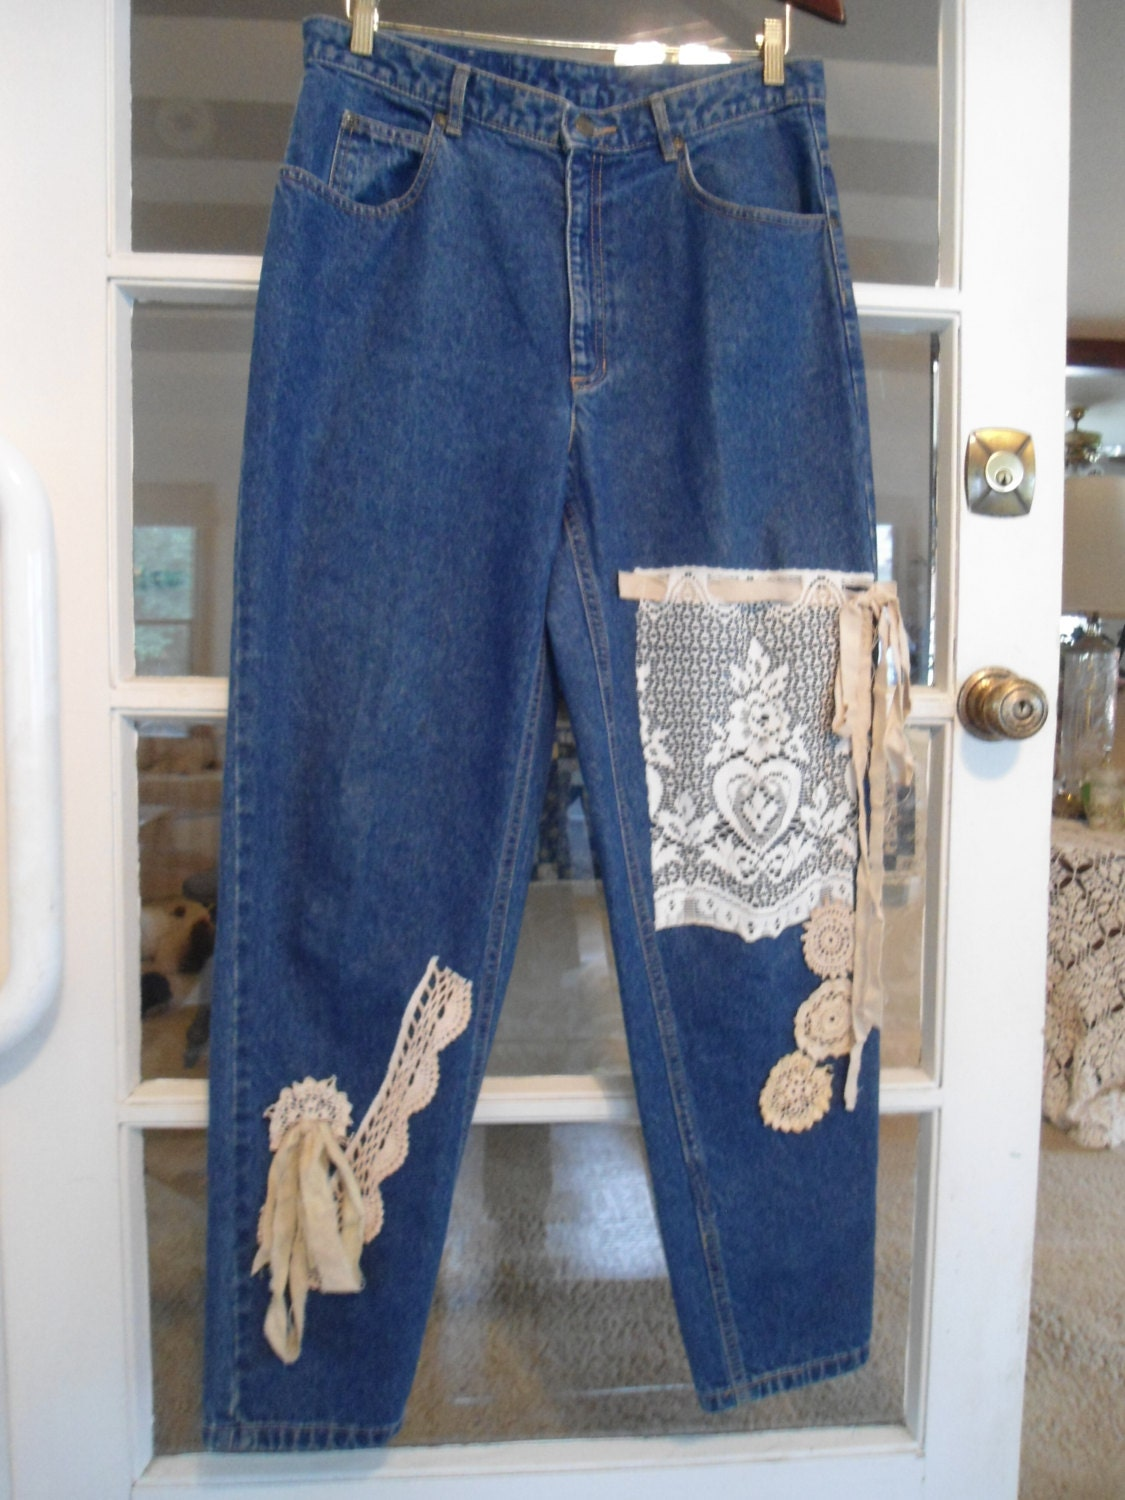 Mens Patchwork Jeans Retro Industrial Upcycled Hippie Grunge Bohemian Pants 32 x 35 Patched Denim Dark Blue Straight Leg Button Cuff Boho pHD3qE7